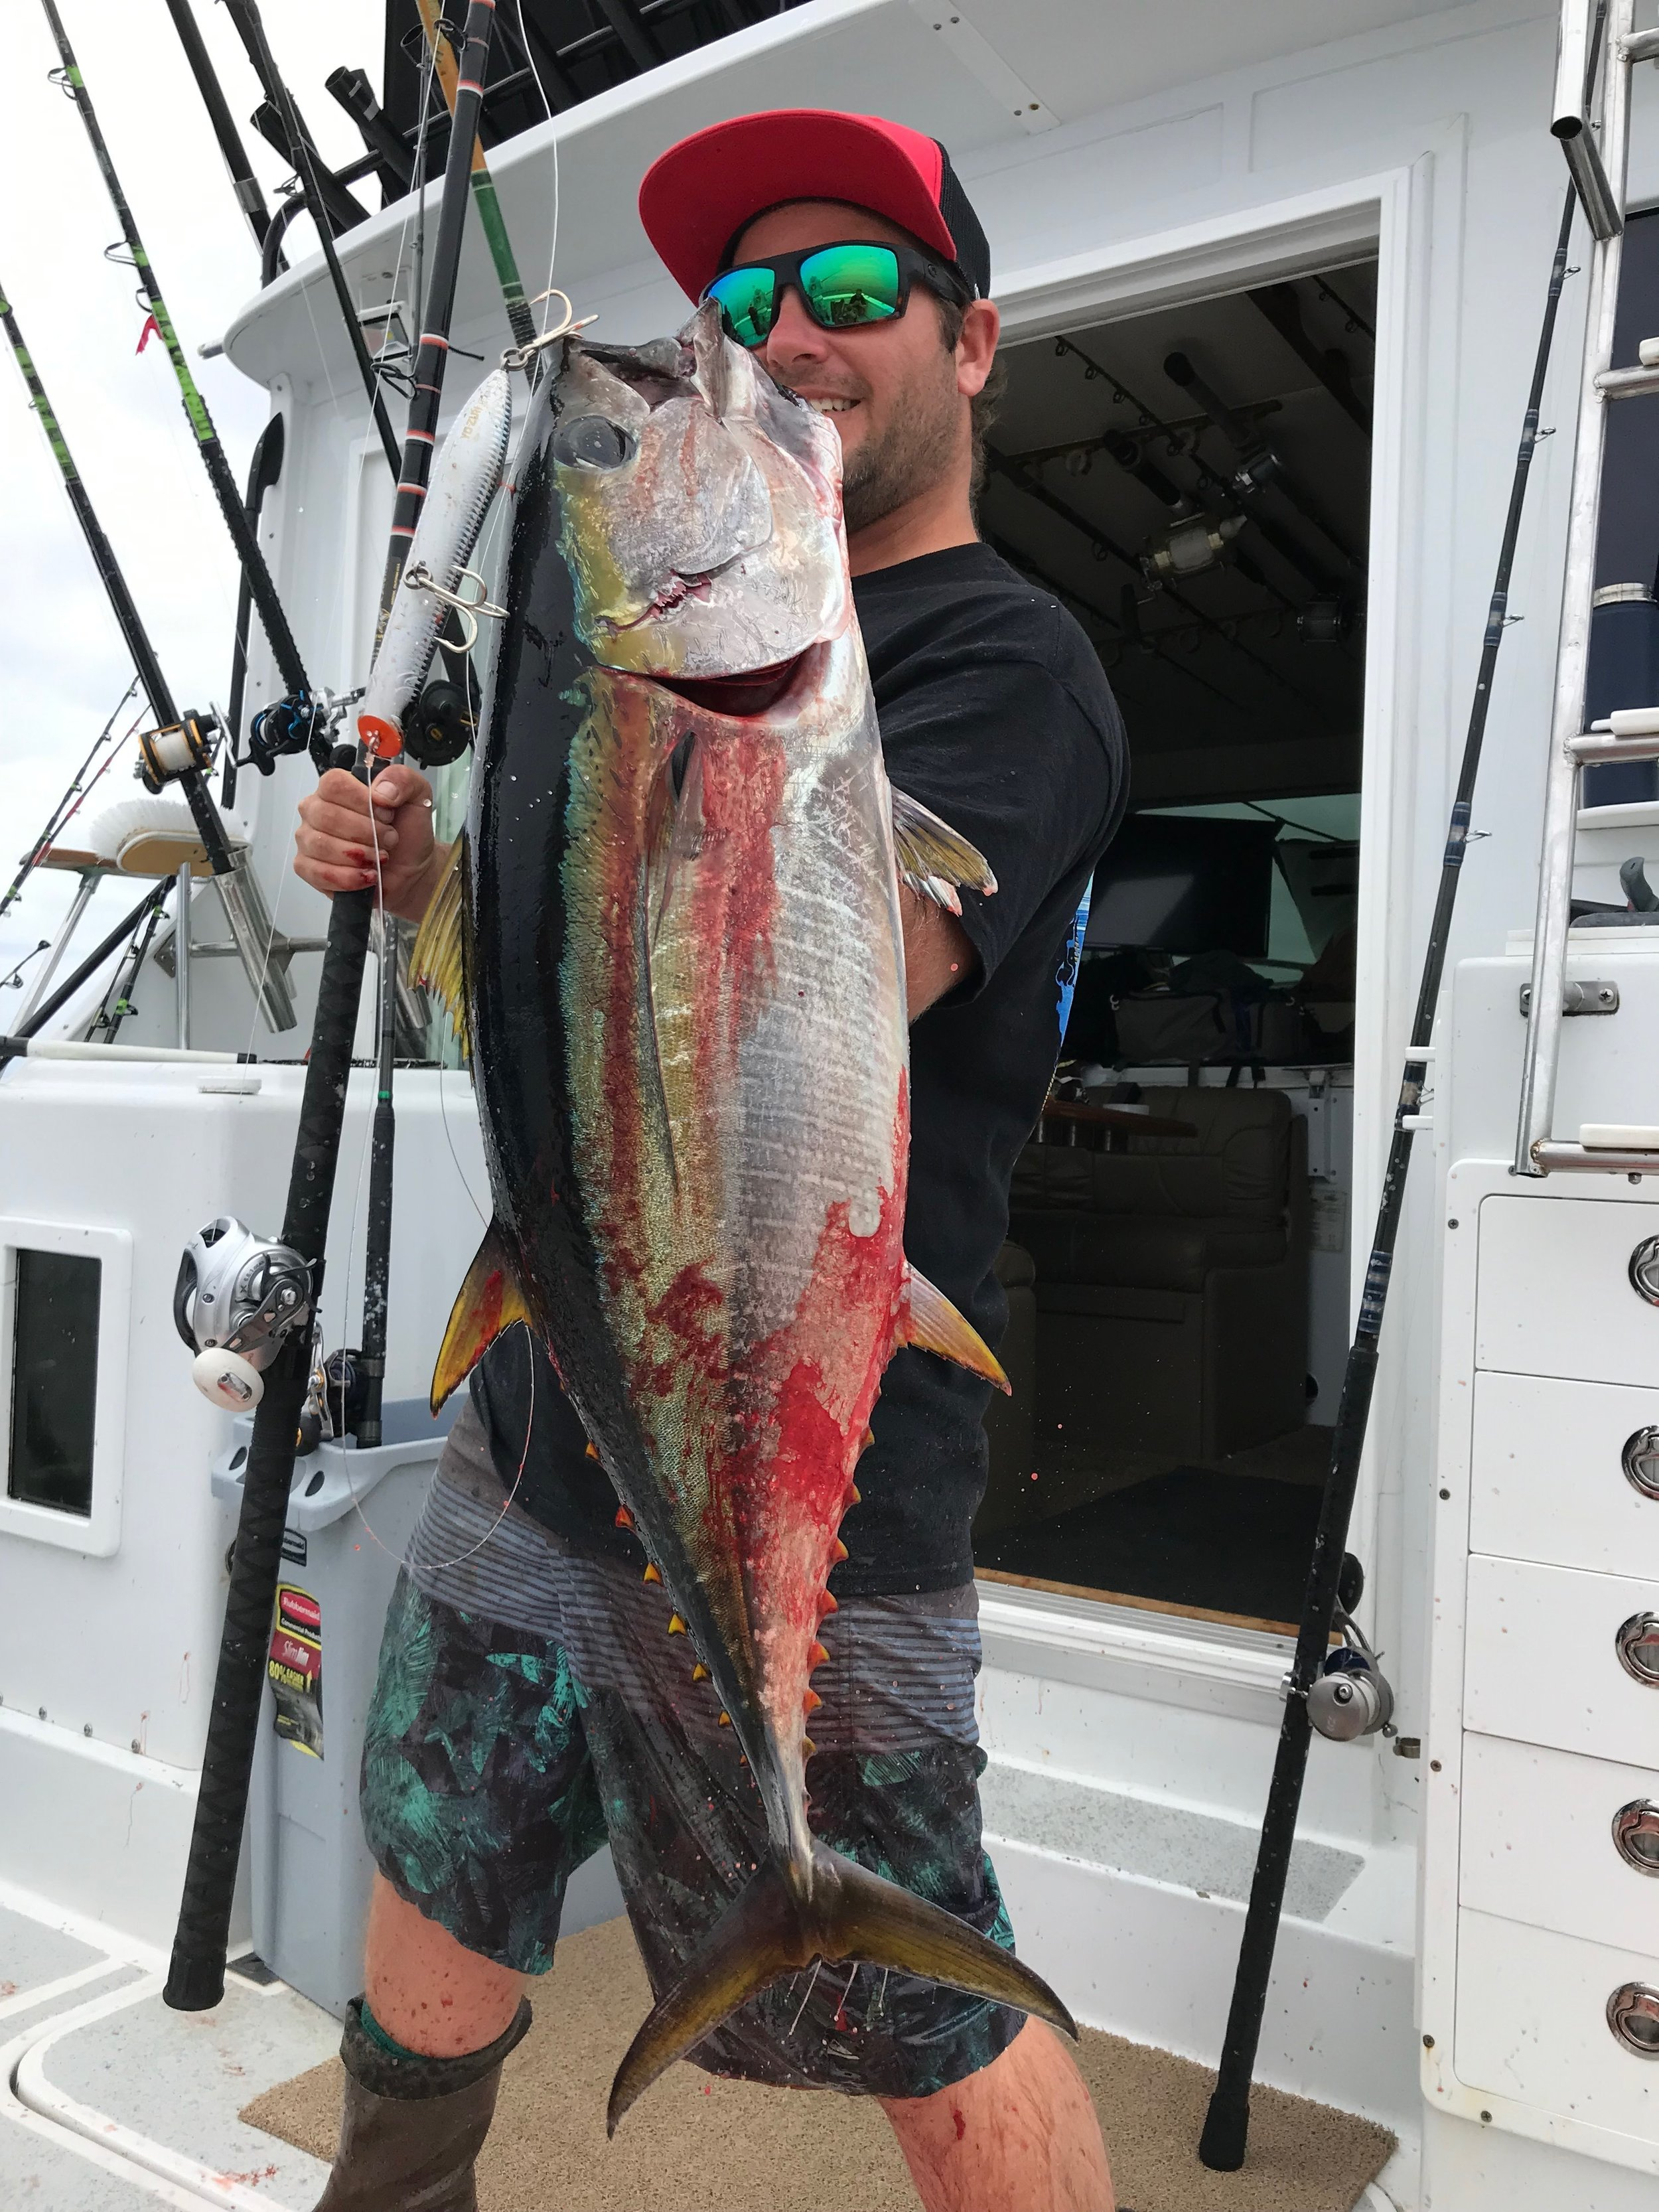 - 6-25-2019Capt James Santos managed a few Yellowfin Tuna on the popper for his efforts!